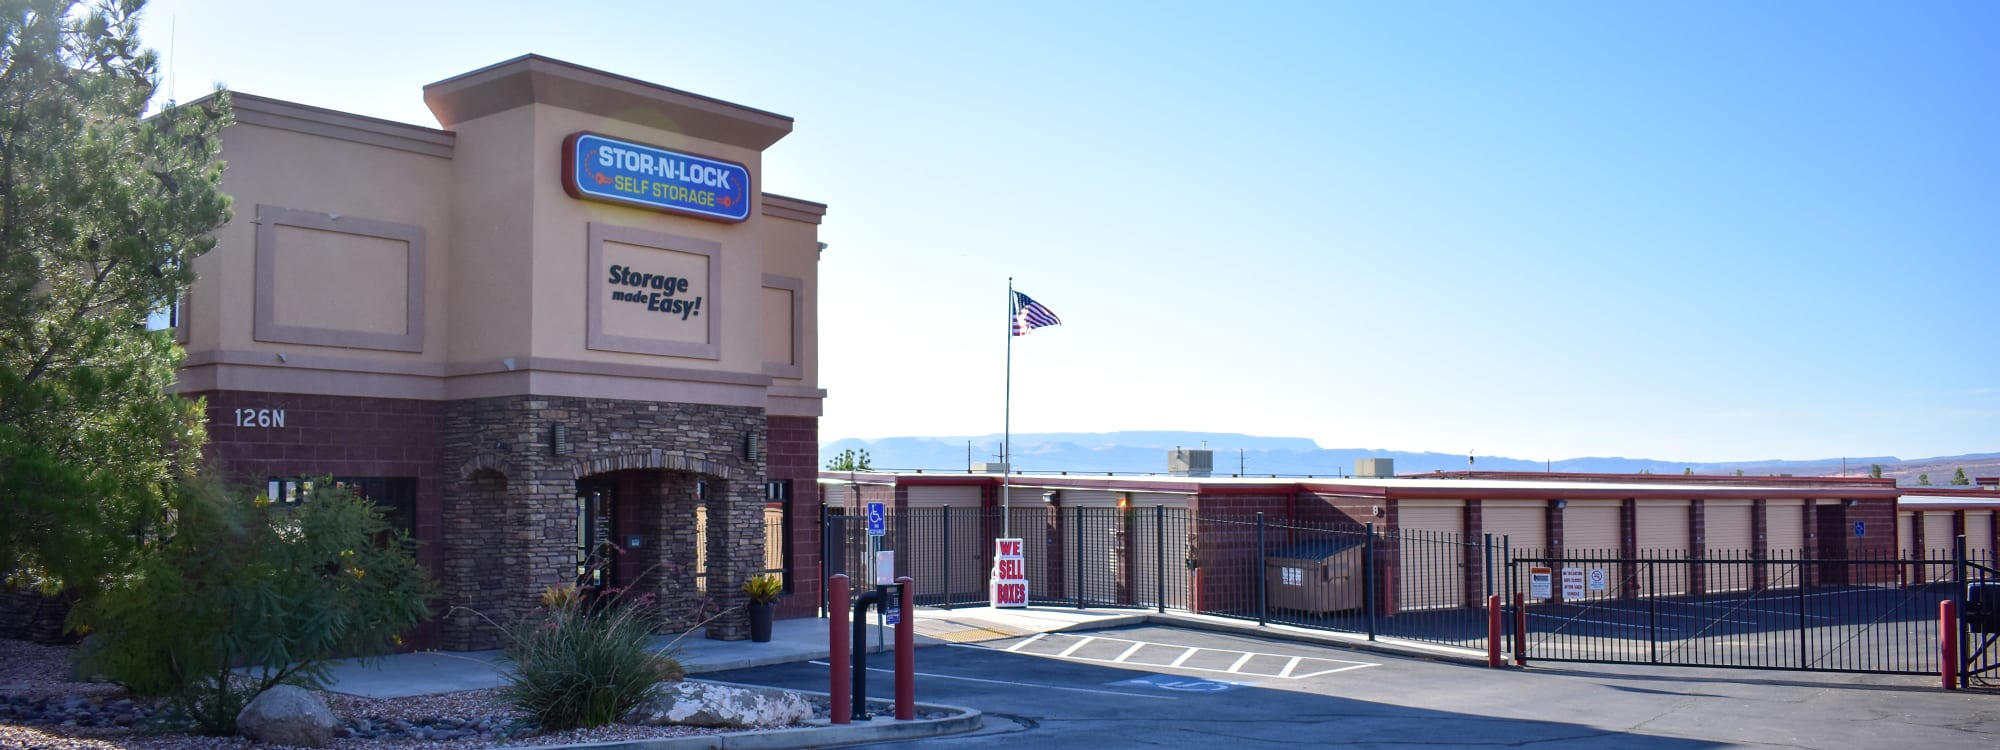 STOR-N-LOCK Self Storage in Hurricane, Utah